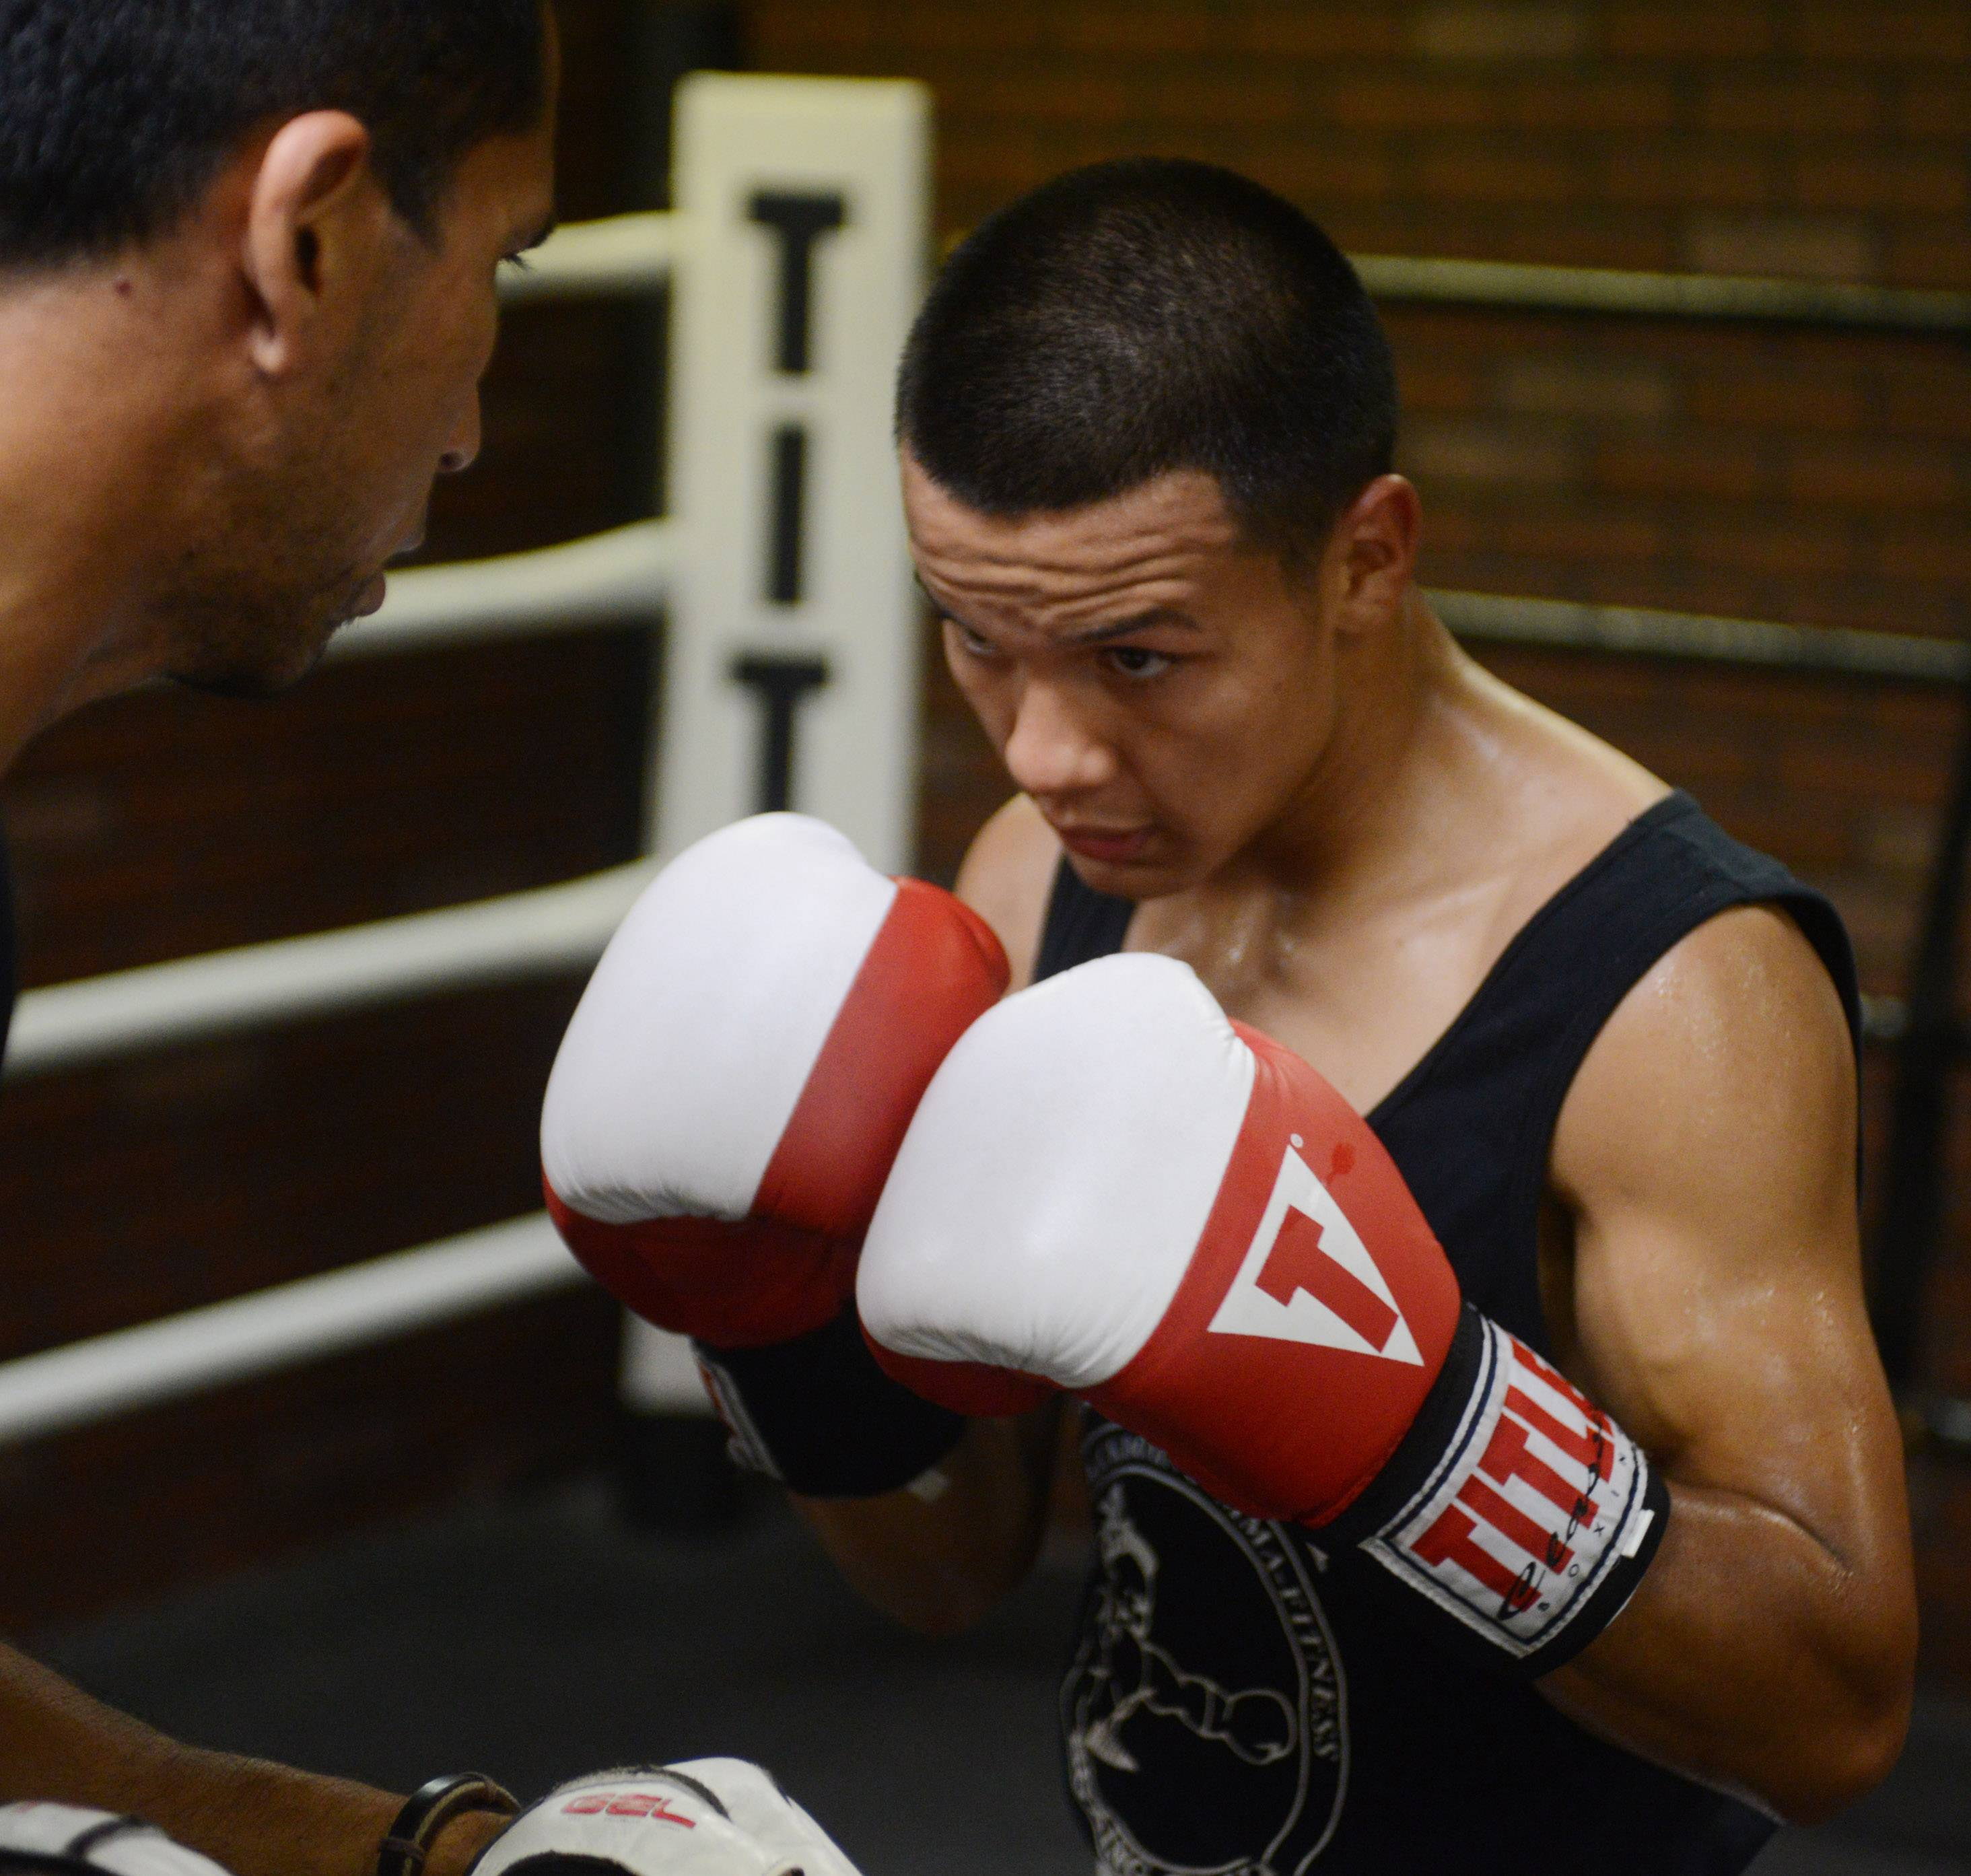 Javier Rivera of Palatine has claimed a Golden Gloves and two Power Gloves championships at just 19 years old. Javier, who hopes to become a professional fighter, credits much of his success to his coach, Pedro Calla, at Rumi Maki Boxing and Fitness Club in Palatine.